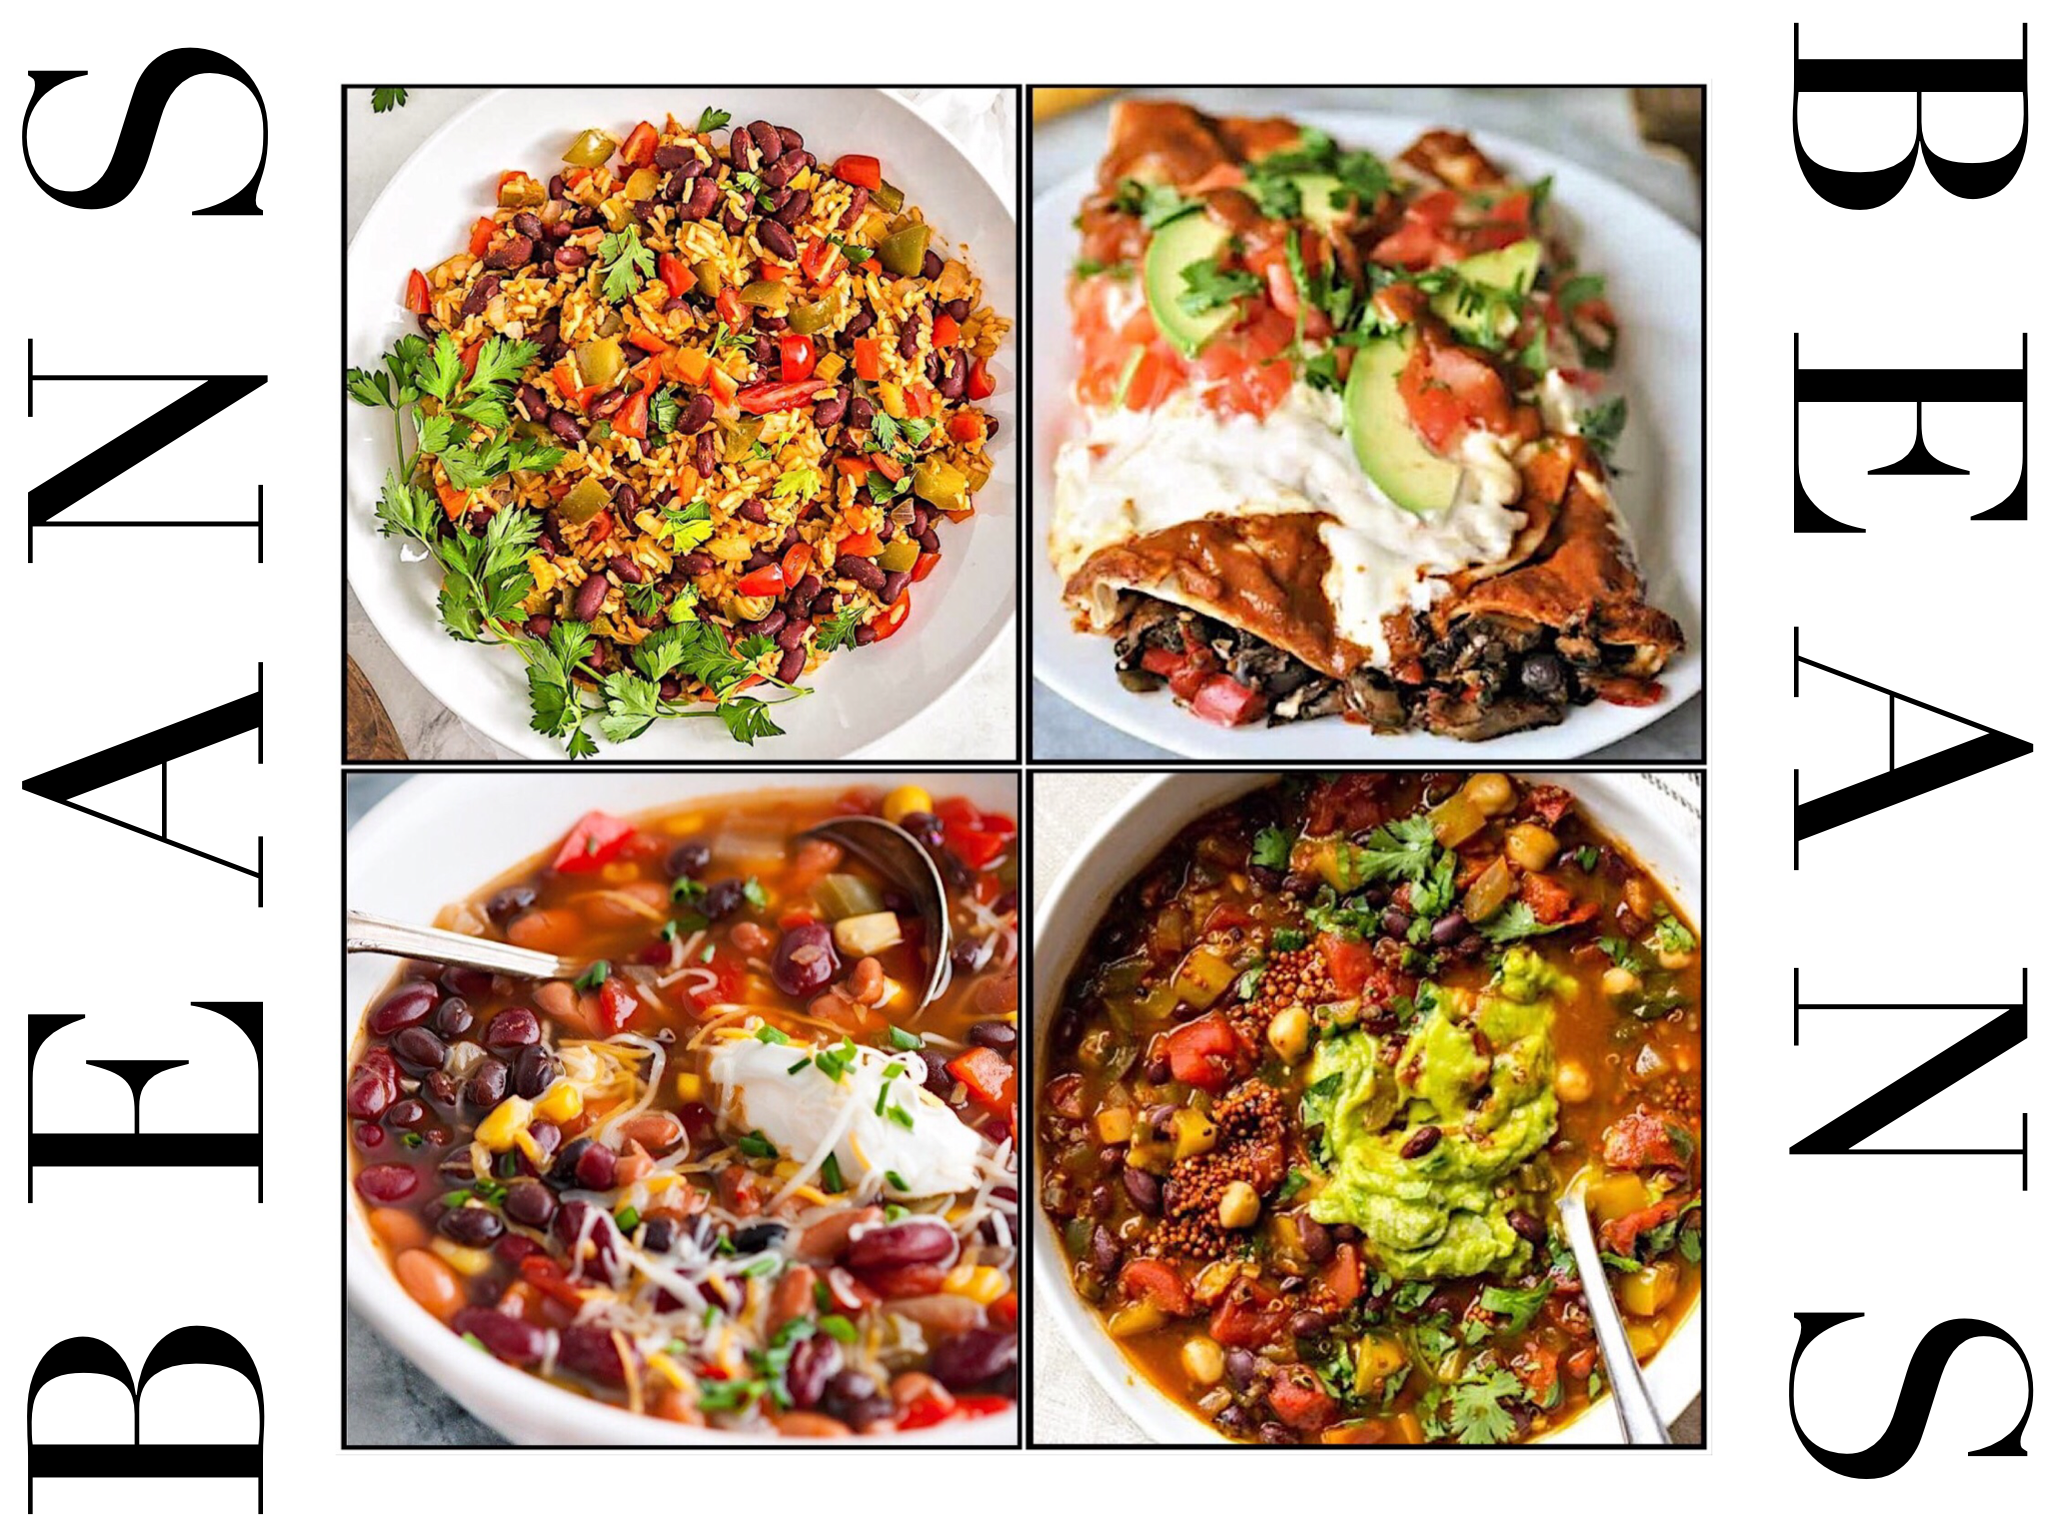 Beans - Beans are incredibly cheap, nutritious and versatile. Stew, soup, dip, sauce, burgers or brownies, whatever you're in the mood for, beans are there!